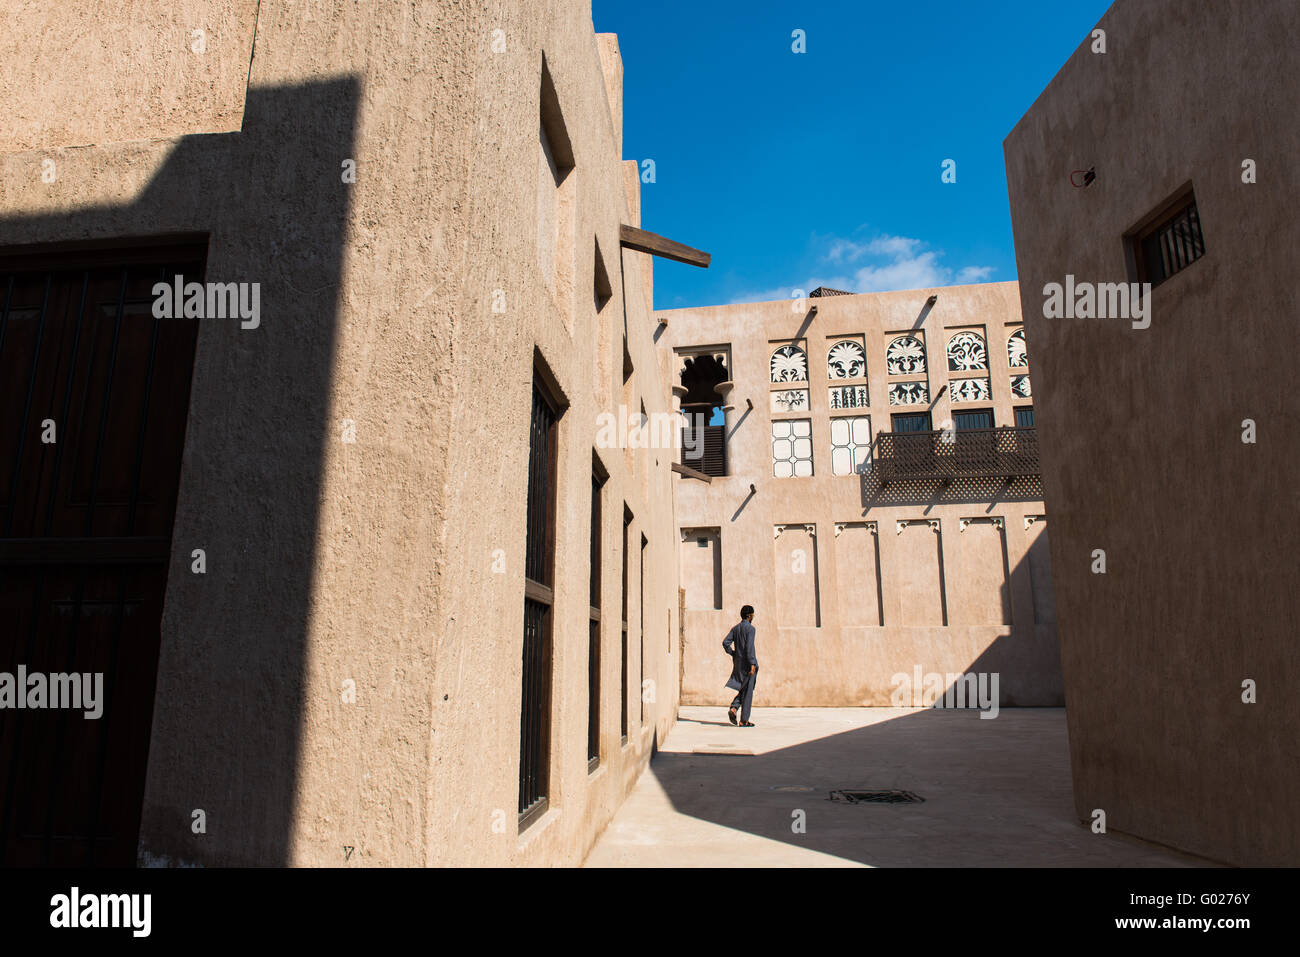 Man walking through Old Dubai, UAE. Stock Photo